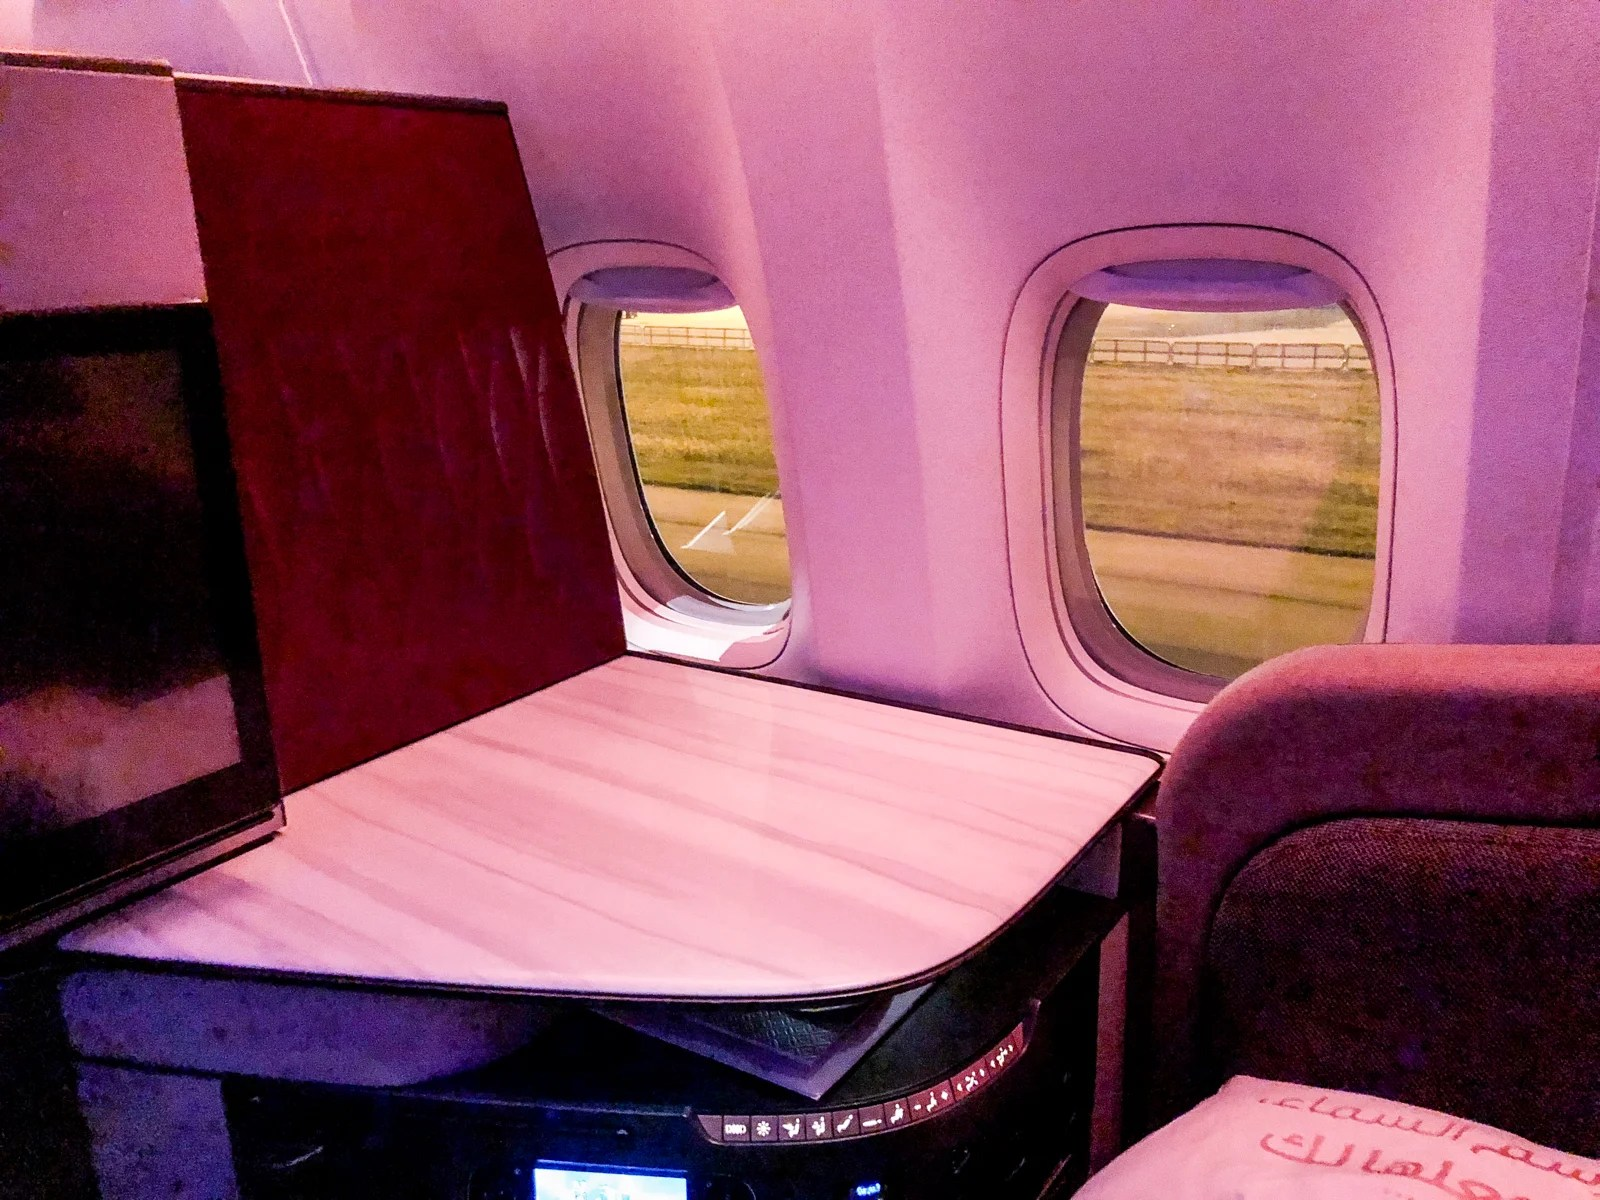 Black Point System In Qatar Review Qatar Airways 777 300er Qsuite From Hkg To Doh